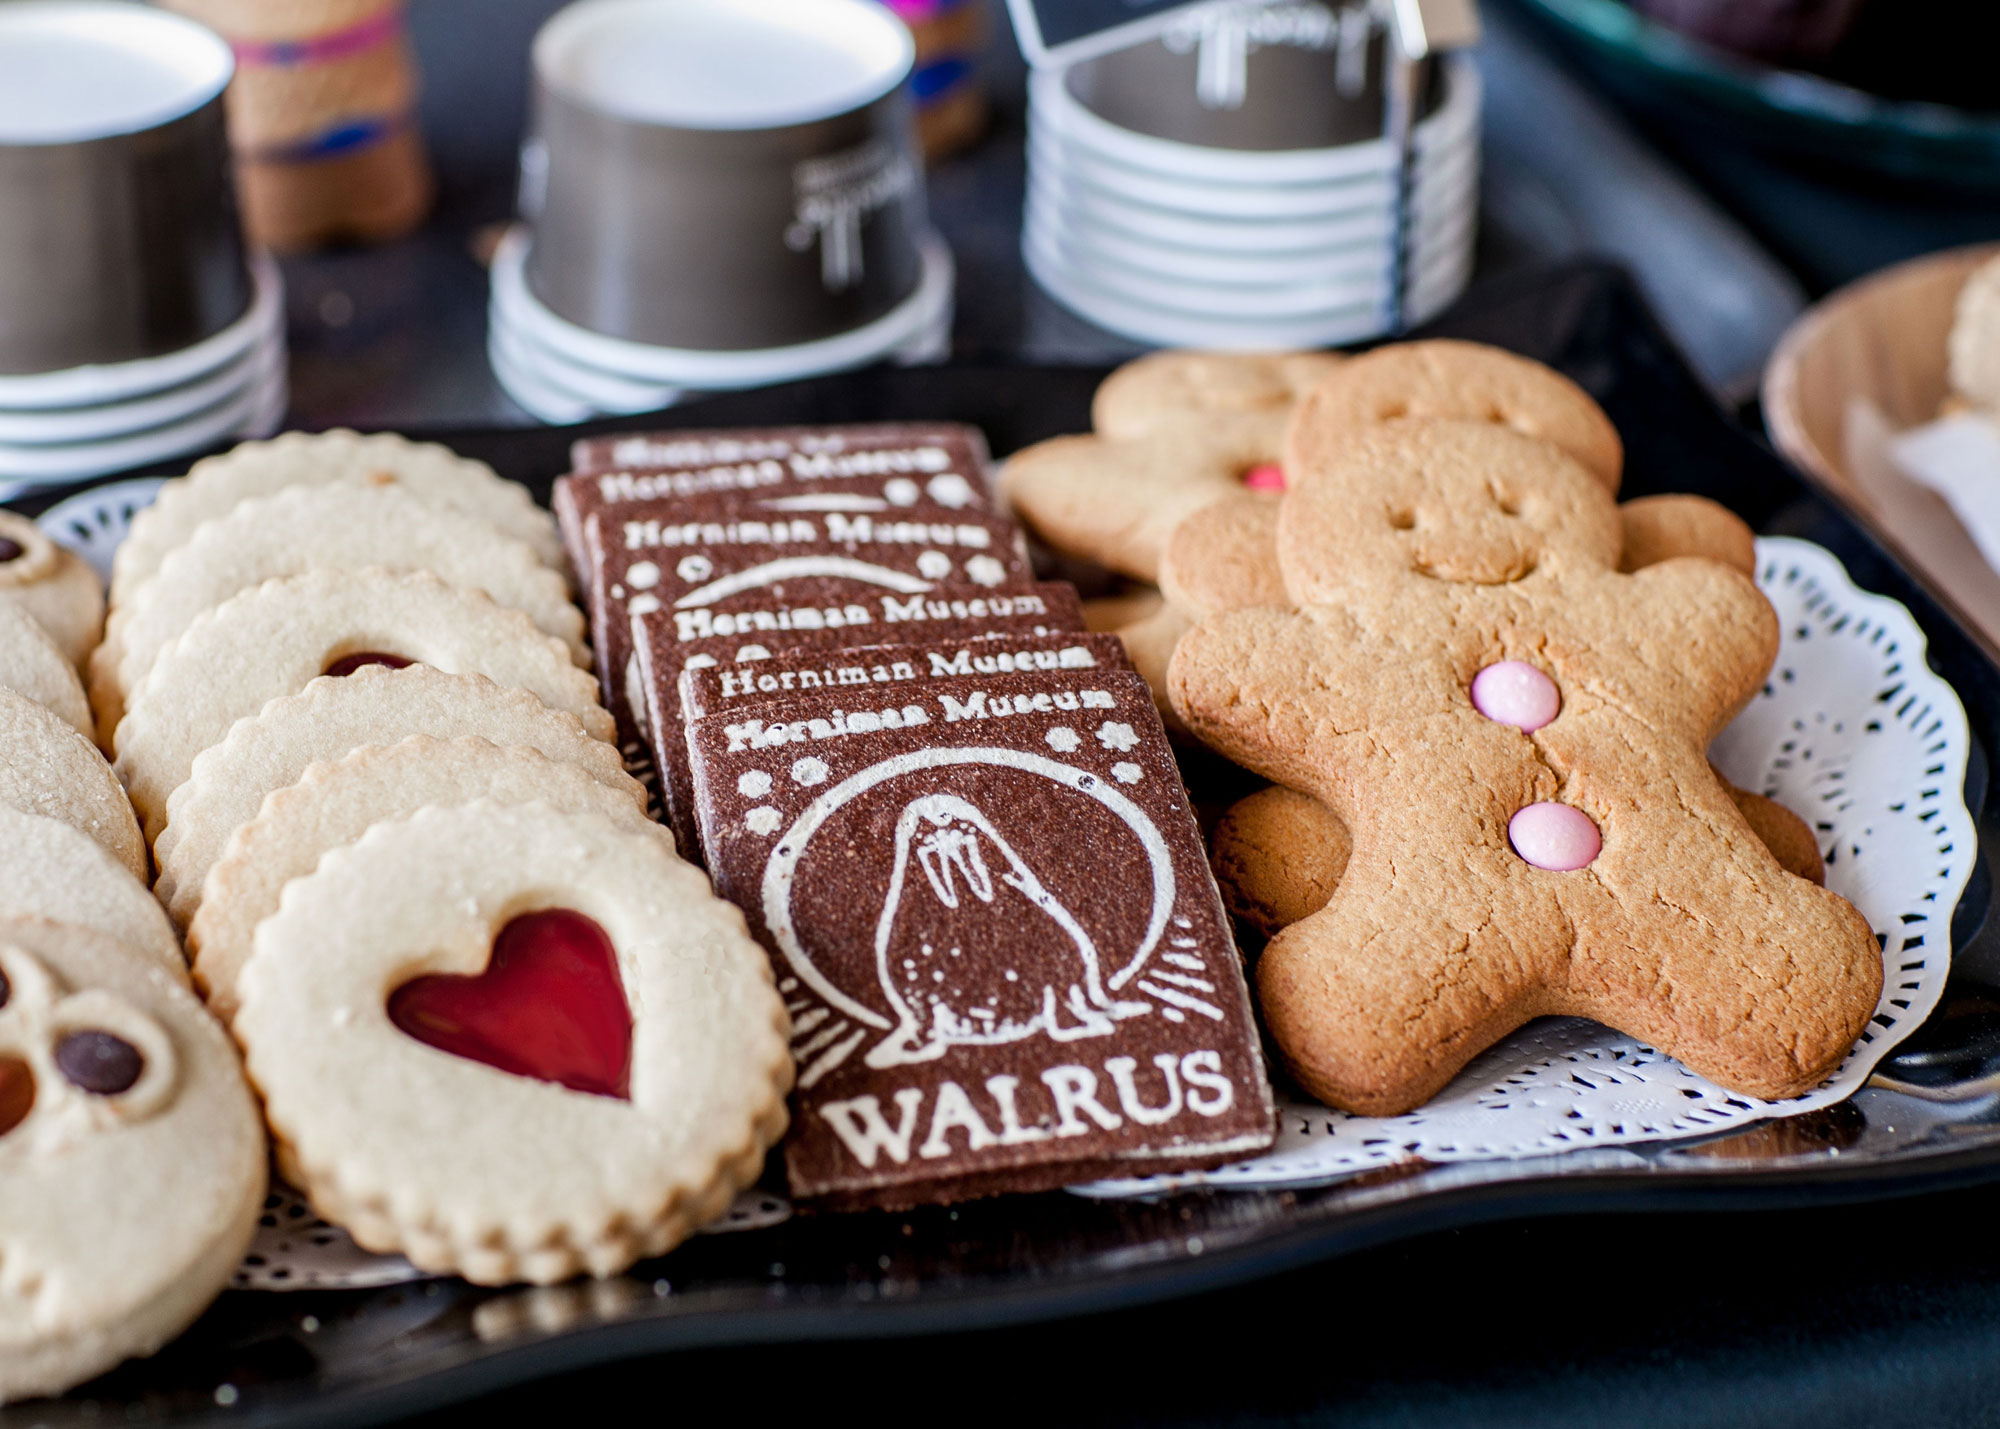 A display of biscuits on a counter. From left to right, a round biscuit with a heart made of jam at the centre, a square chocolate biscuit with a walrus on it and a gingerbread man biscuit with smartie buttons